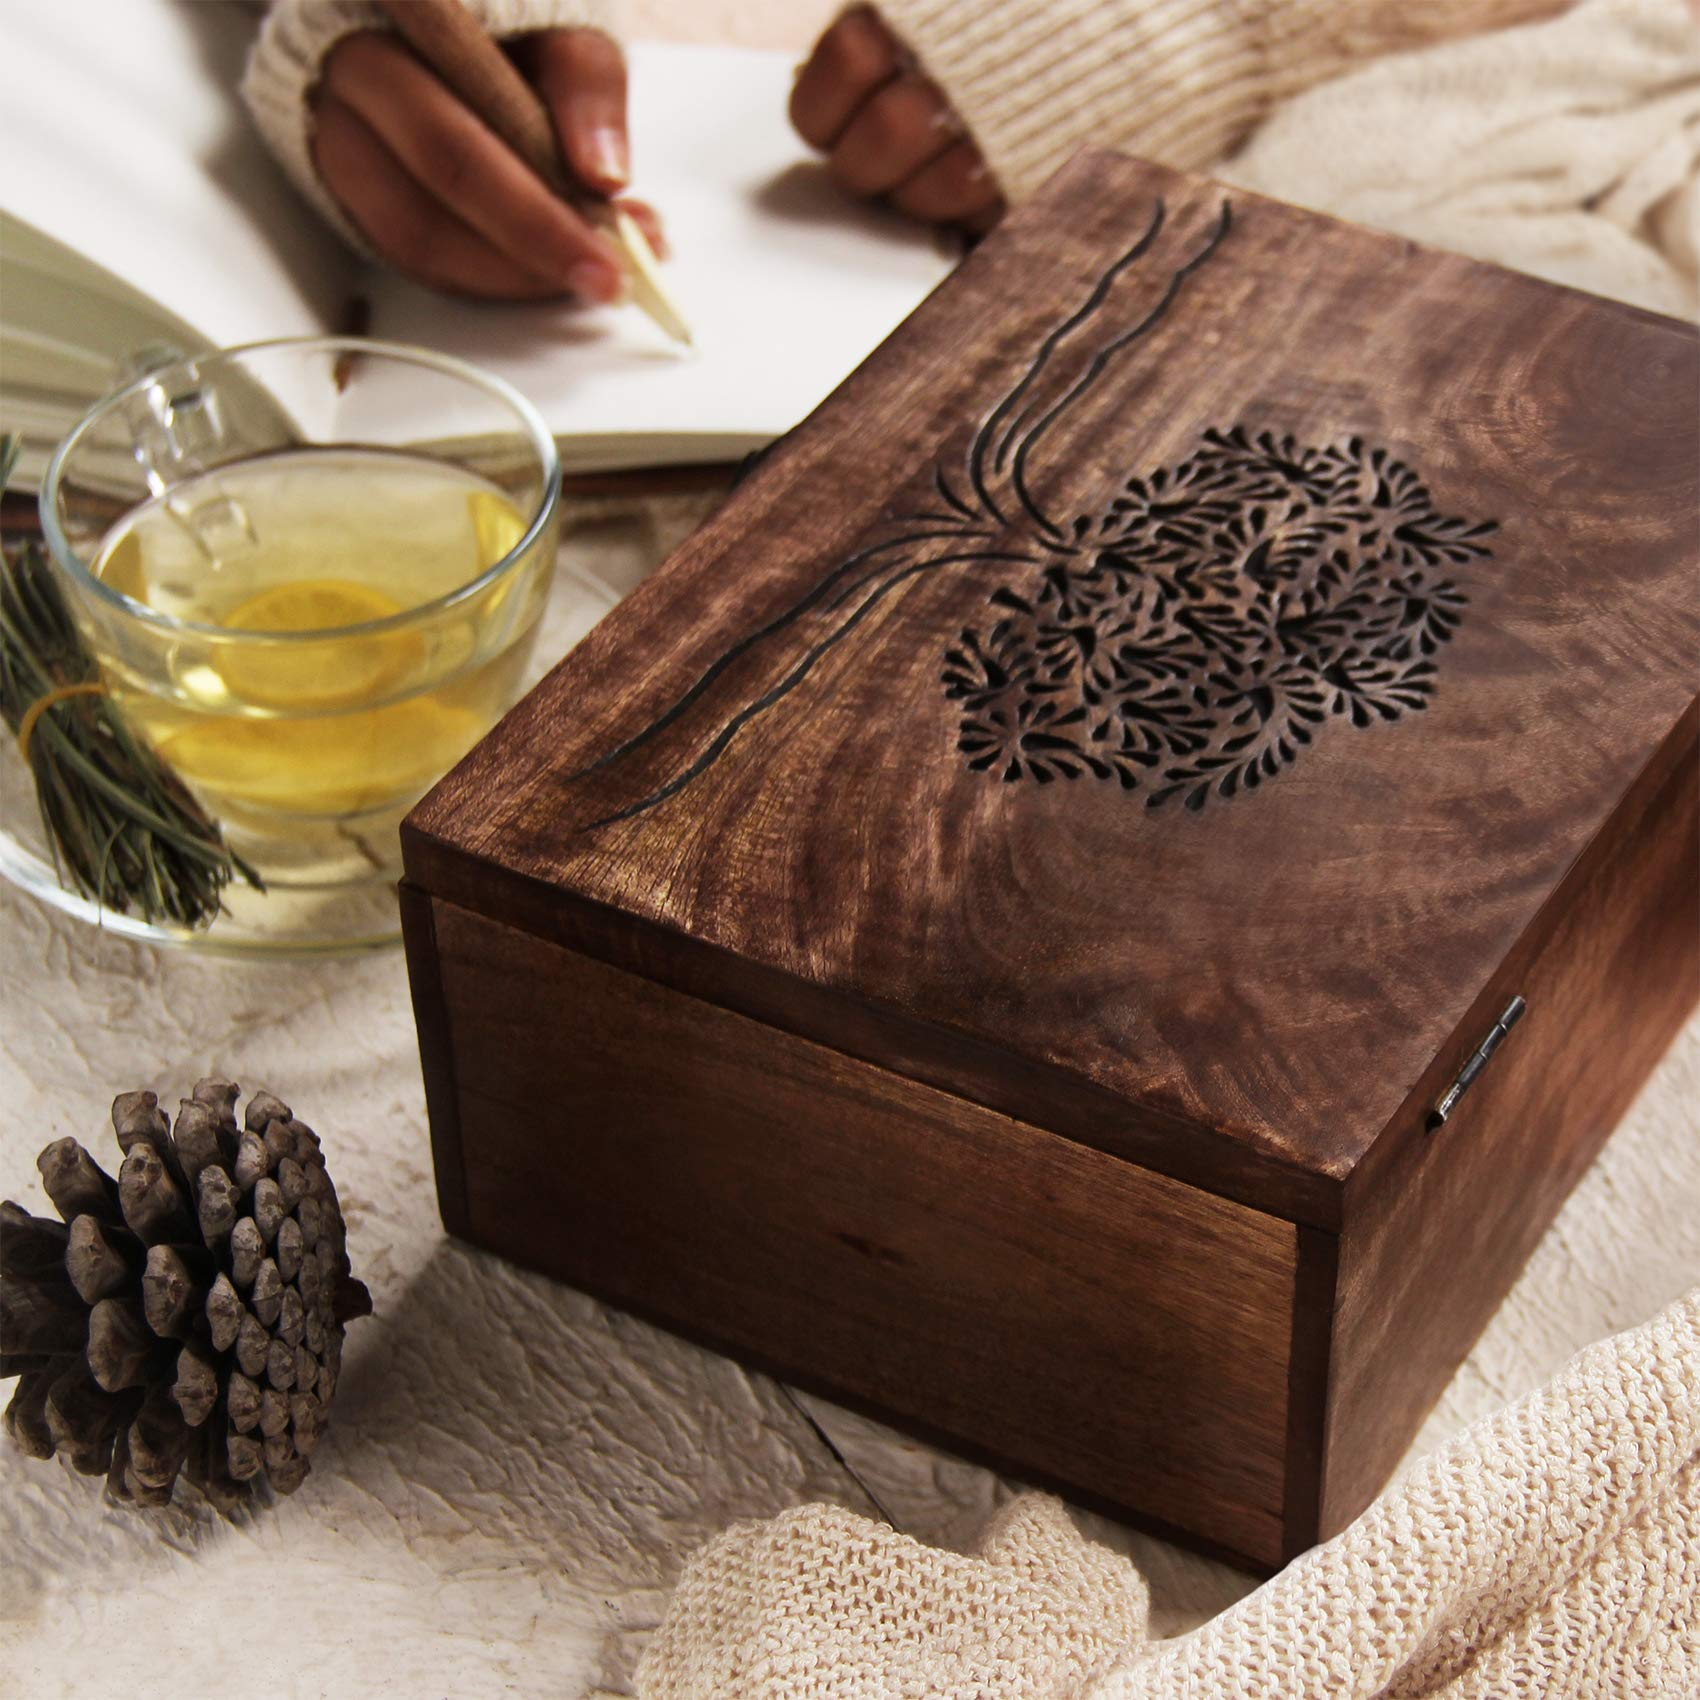 storeindya Thanksgiving Gifts Wooden tea box Caddy with Tree Of Life Motif and 6 compartments Perfect gifting Idea for Christmas and Housewarming